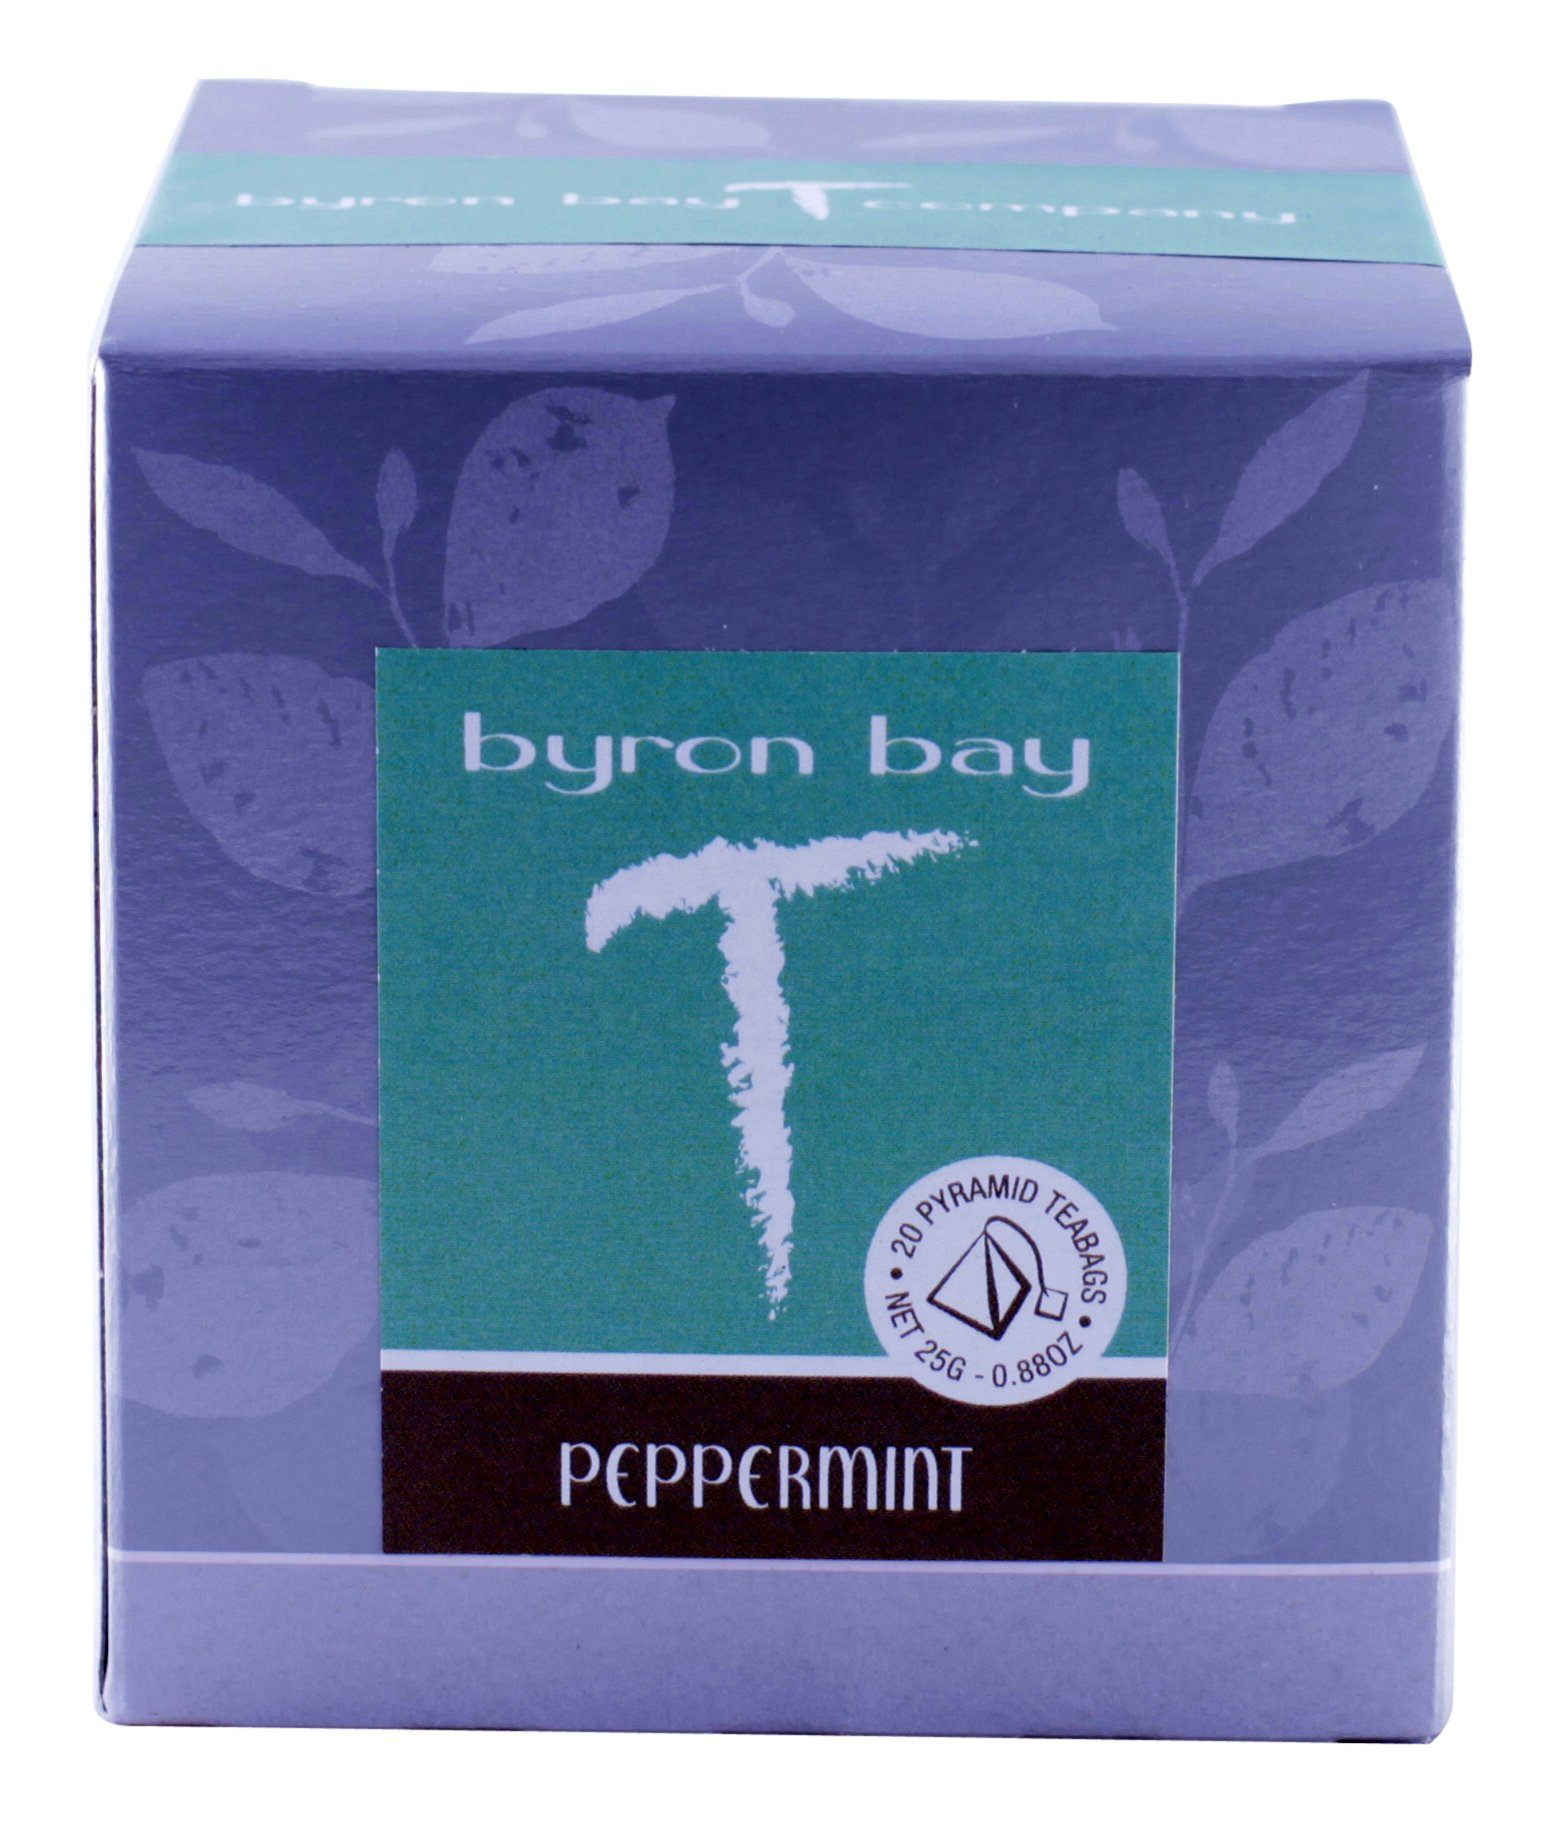 Organic Peppermint TEABAG Box Retail Other Old Stock Default Title